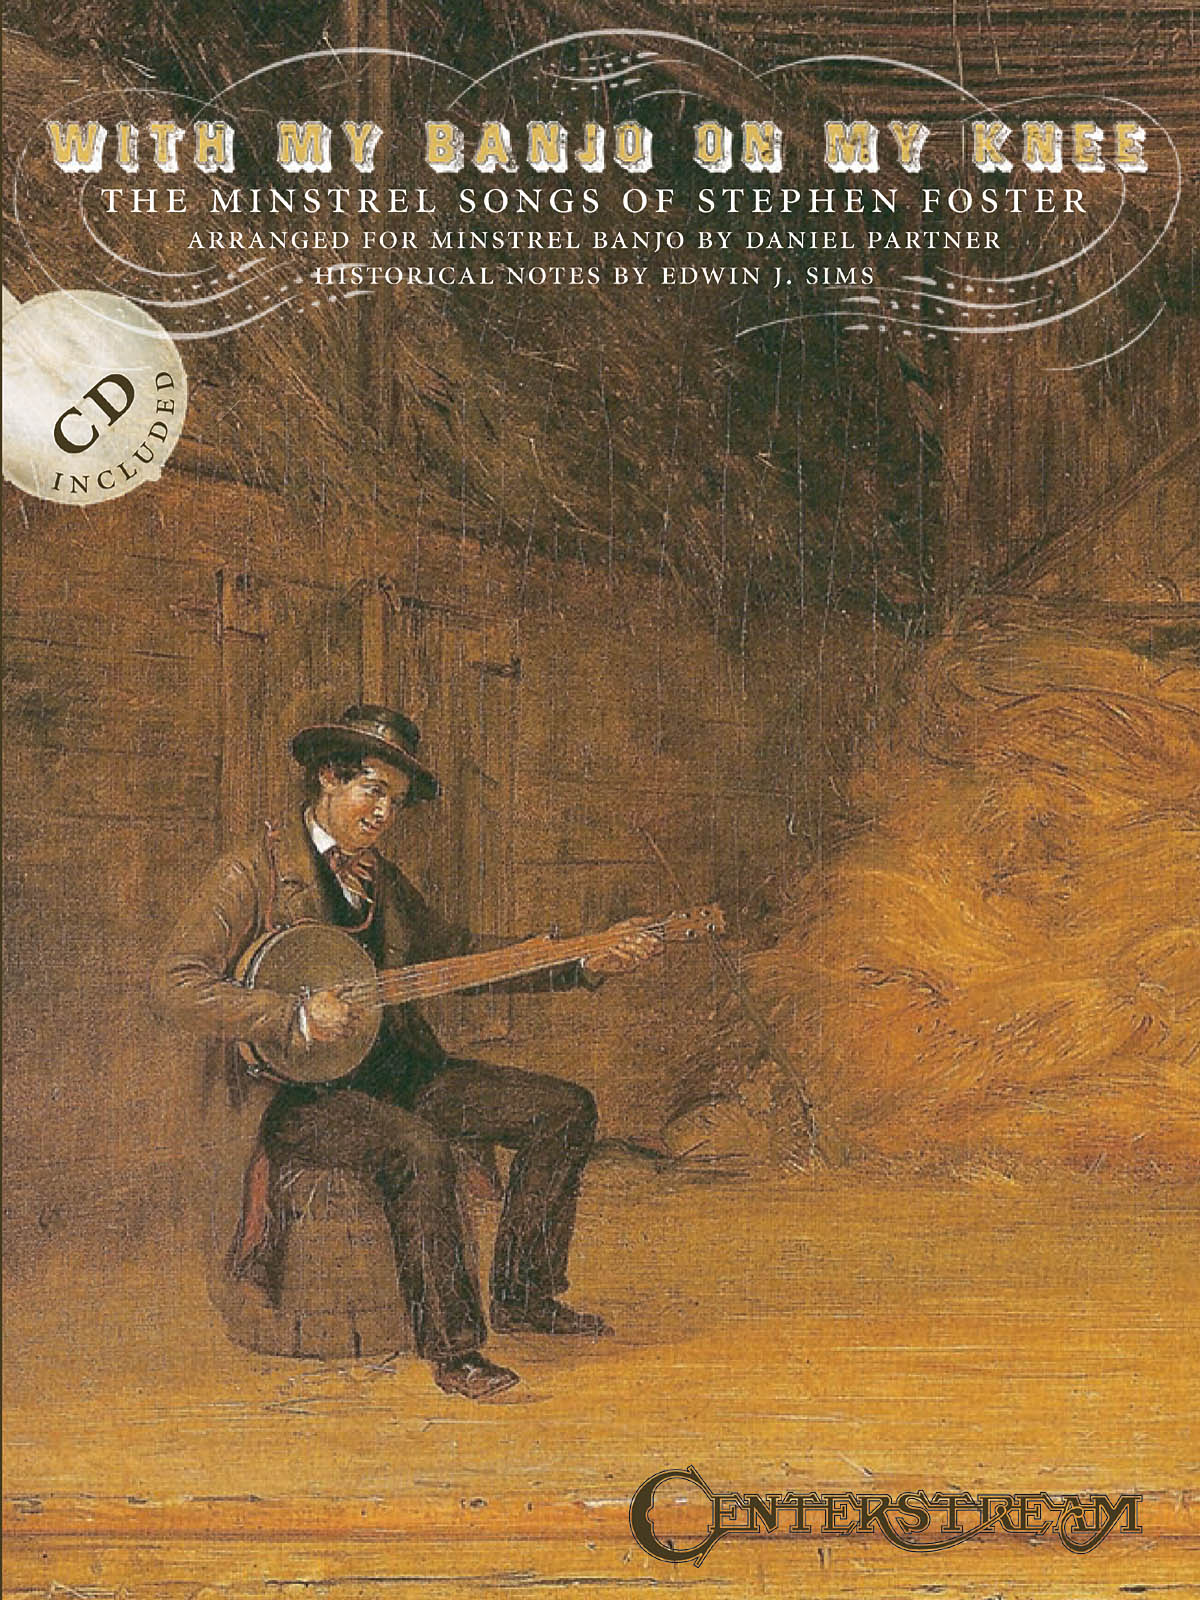 Stephen Foster: Steven Foster: With my Banjo on my knee: Banjo: Artist Songbook